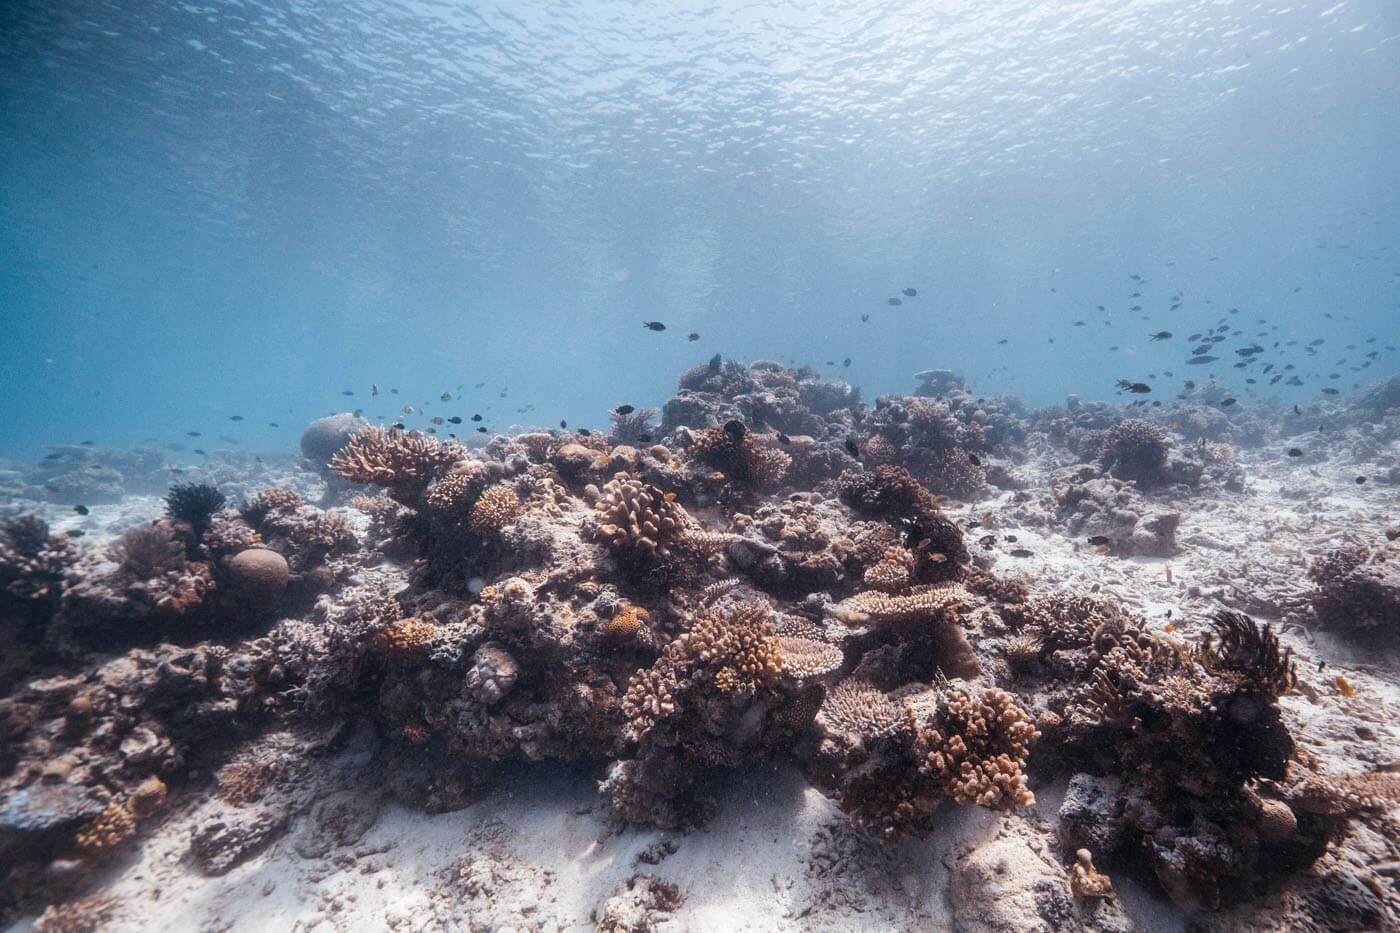 Island of corals or island of sponges